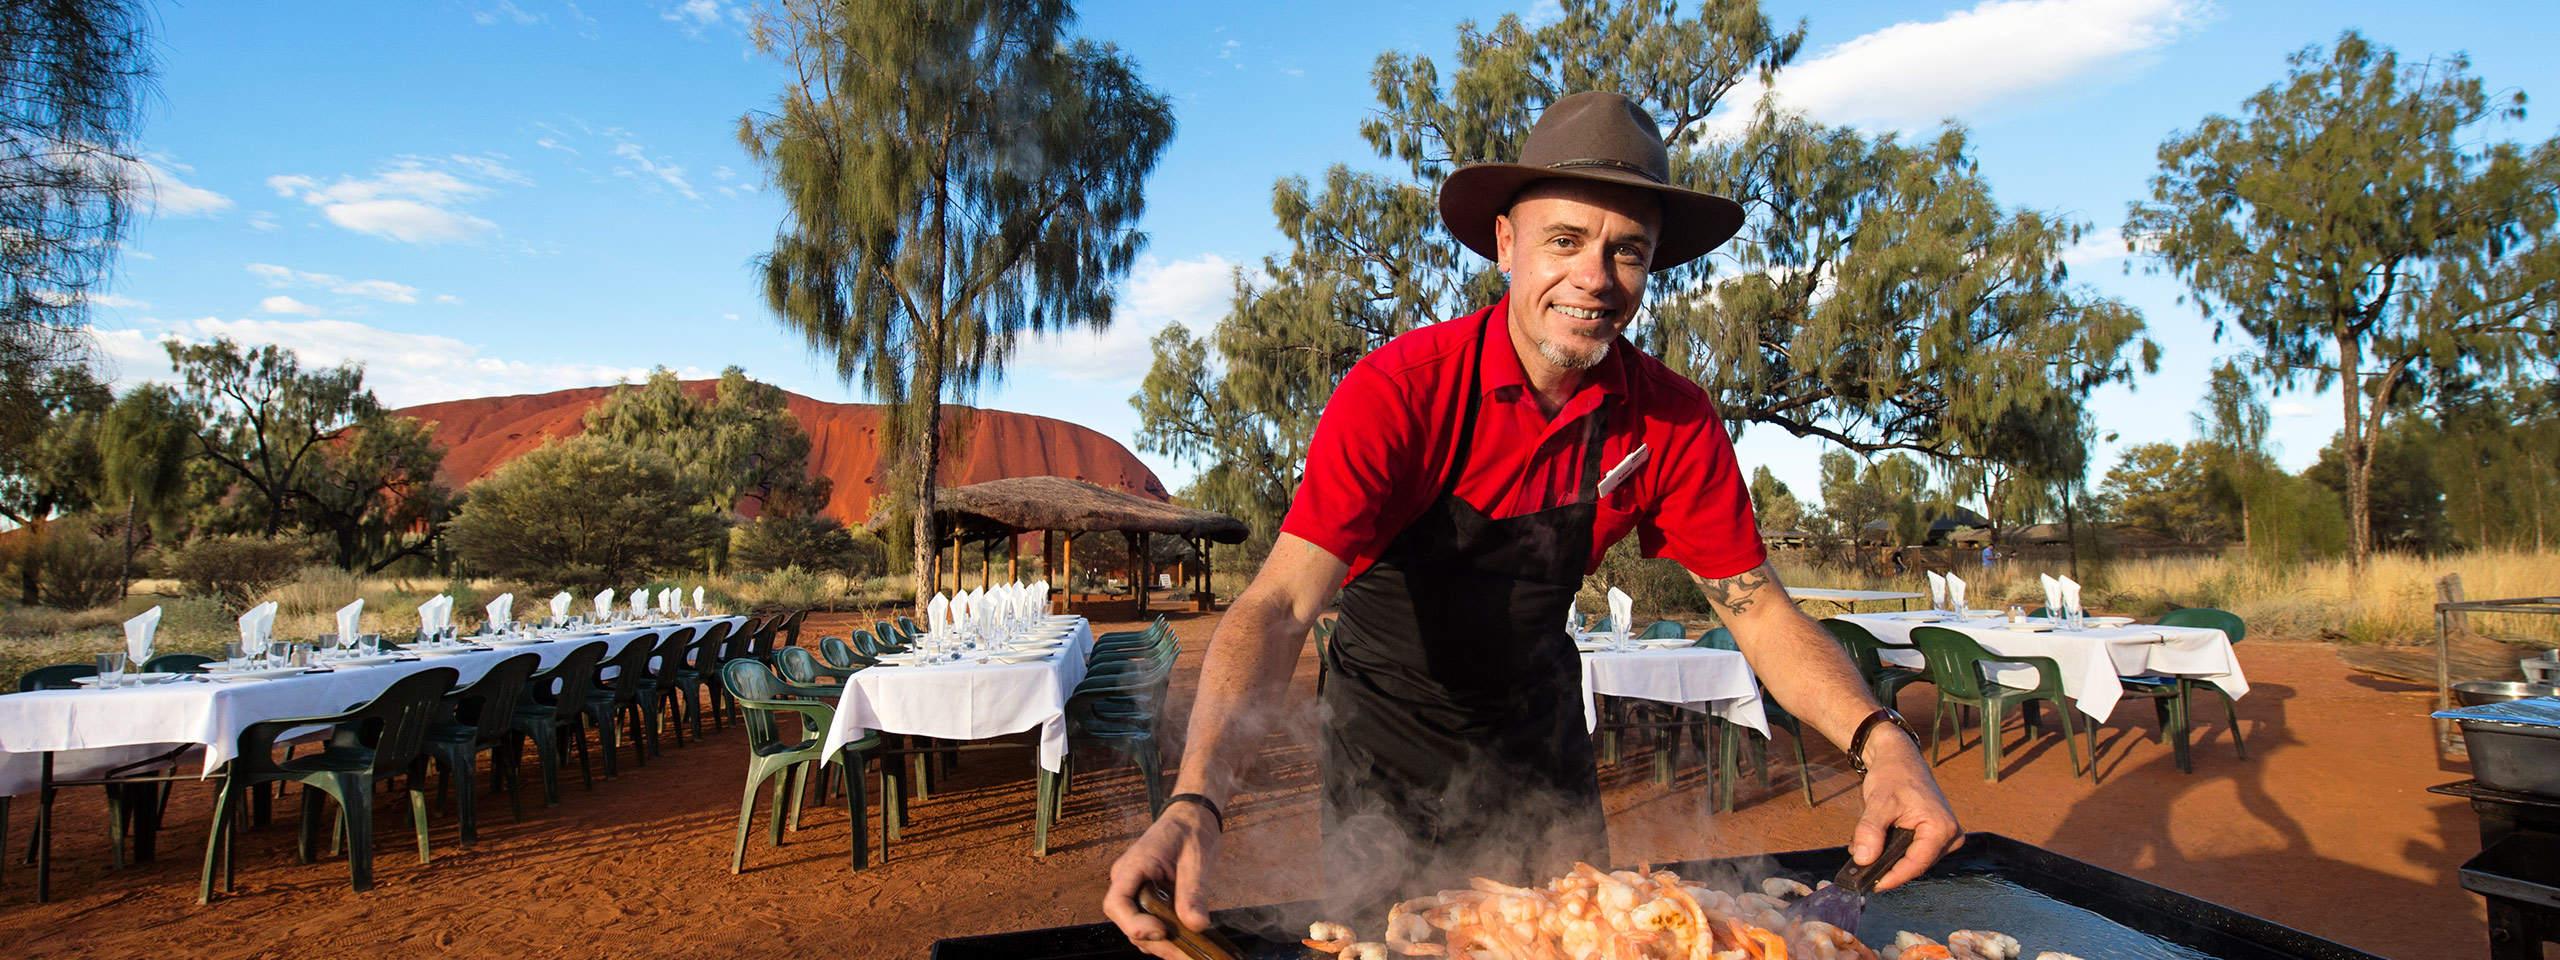 AAT Kings Uluru Barbecue